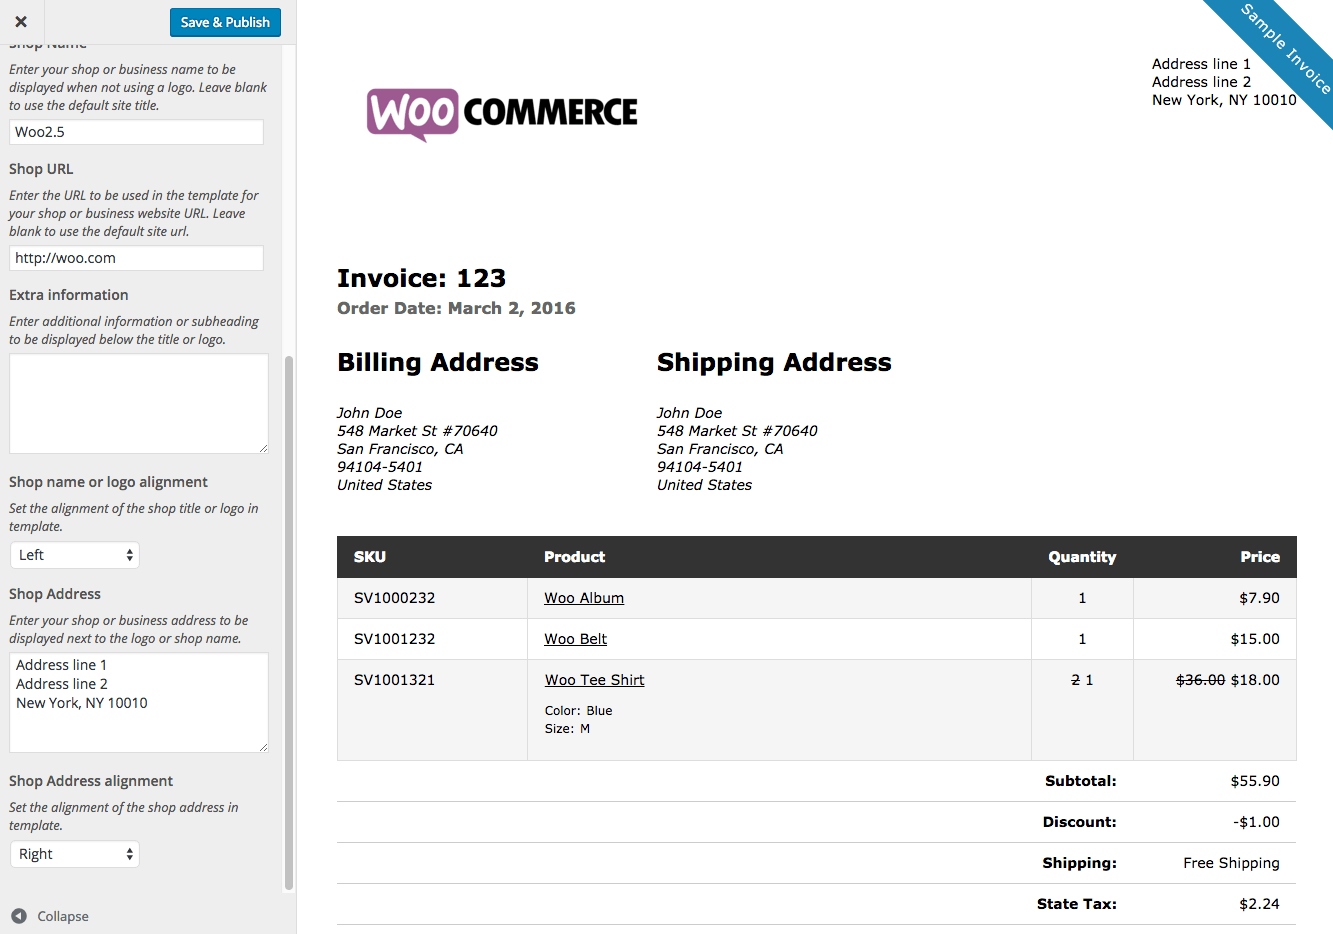 Angkajituus  Stunning Woocommerce Print Invoices Amp Packing Lists  Woocommerce Docs With Goodlooking Woocommerce Print Invoices  Packing Lists Customizer With Delightful Painting Invoice Template Also Legal Invoice Template In Addition Invoice Templates For Mac And Invoice And Receipt As Well As Free Download Invoice Template Additionally Online Invoicing Free From Docswoocommercecom With Angkajituus  Goodlooking Woocommerce Print Invoices Amp Packing Lists  Woocommerce Docs With Delightful Woocommerce Print Invoices  Packing Lists Customizer And Stunning Painting Invoice Template Also Legal Invoice Template In Addition Invoice Templates For Mac From Docswoocommercecom